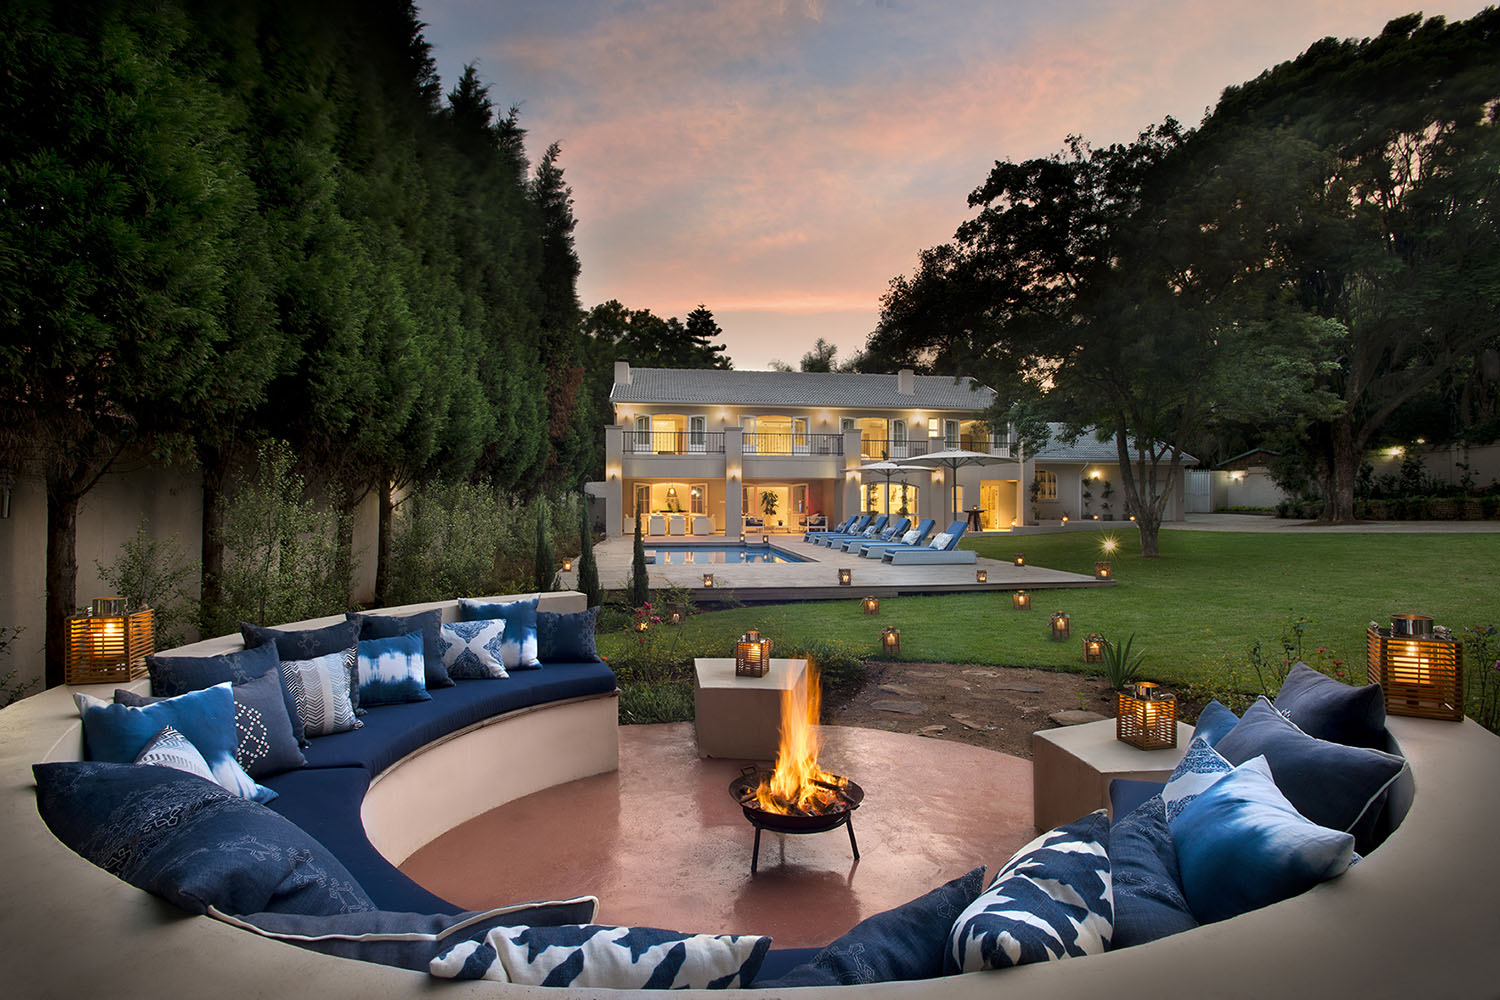 atholplace johannesburg-lodges-zambia-in-style-south-africa-charming-modern-hotel-villa